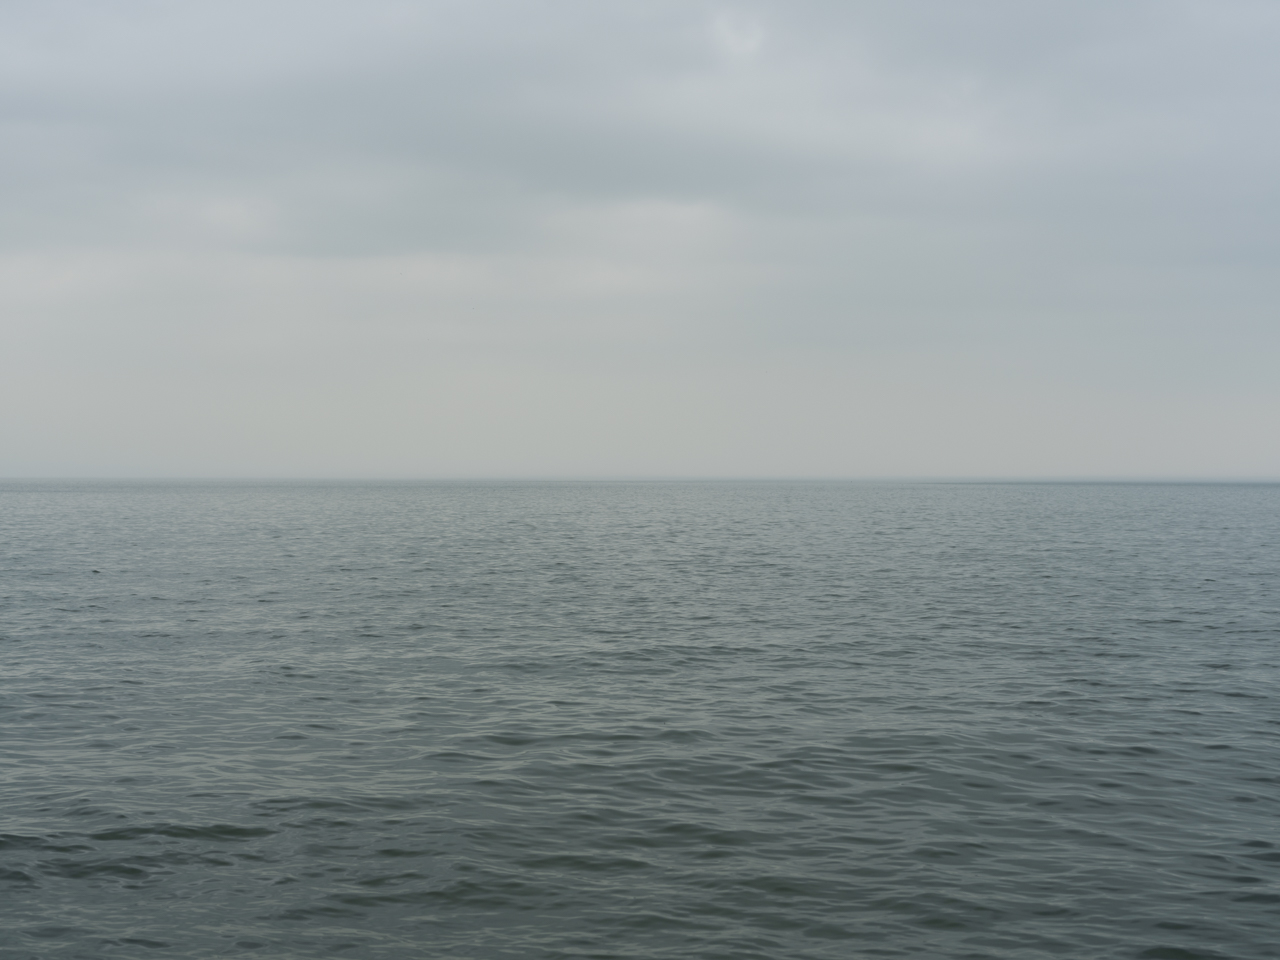 muted greens and grays on Lake Michigan with a heavy overcast sky that still feels light